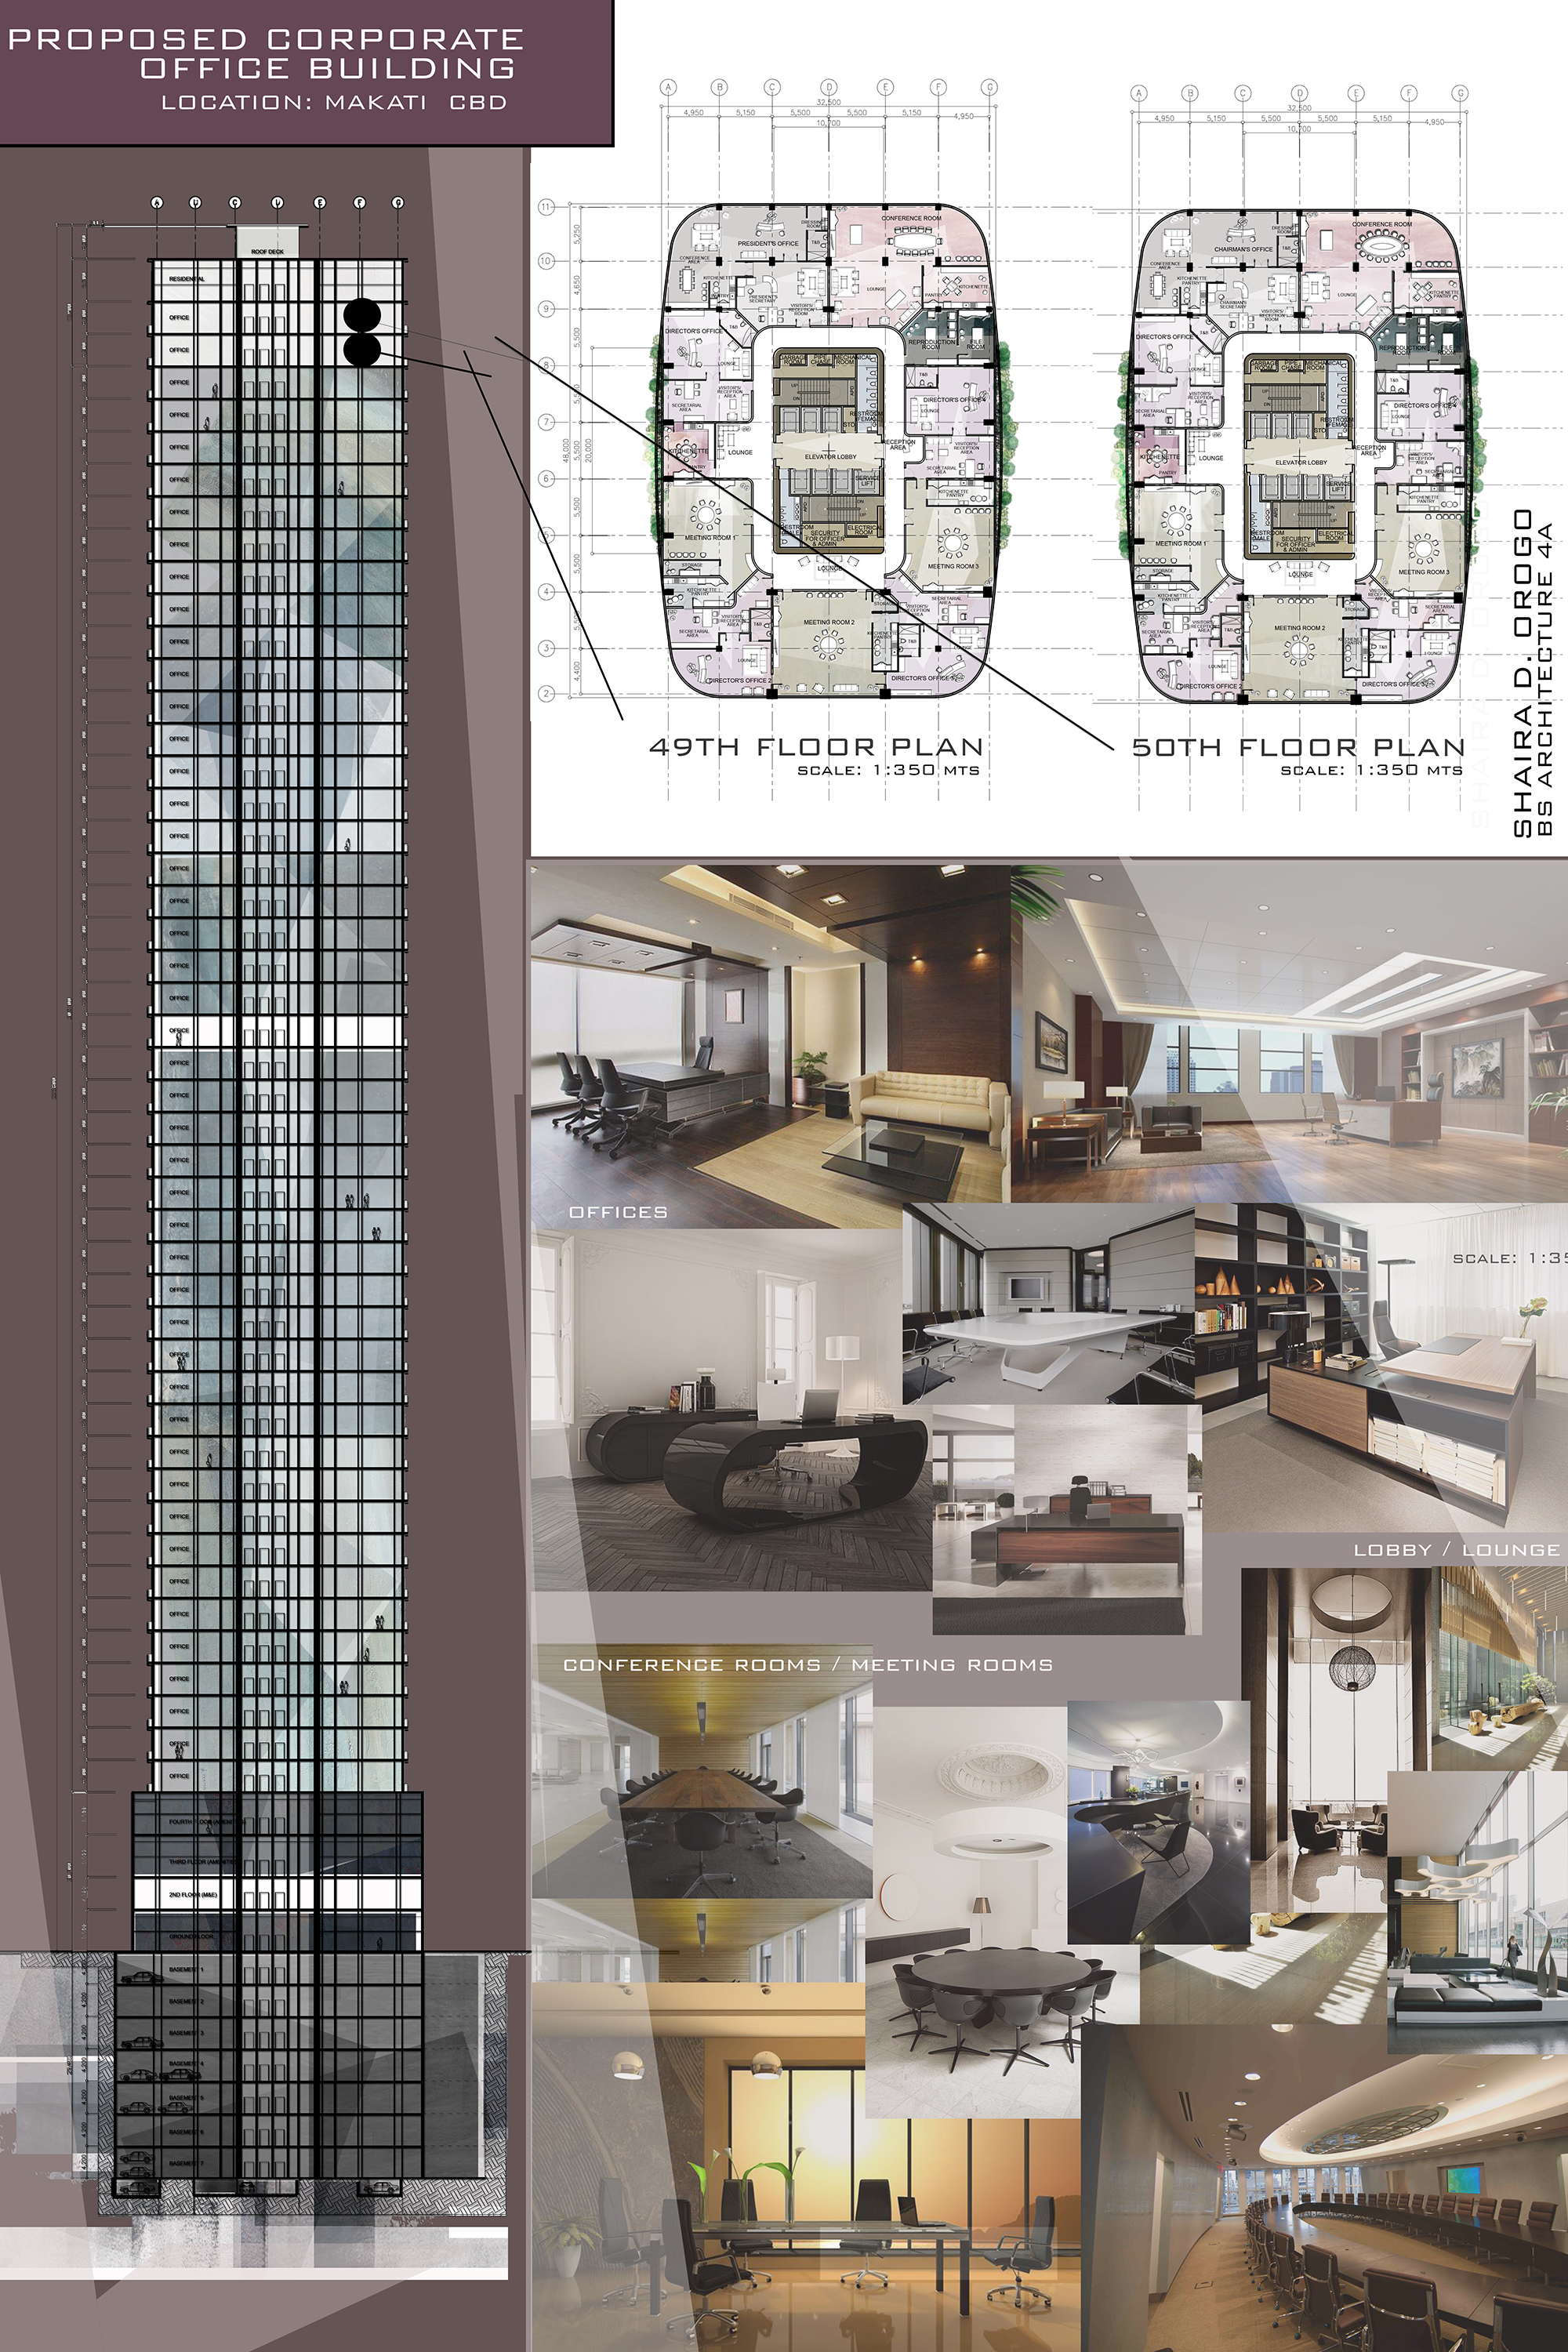 Design 8 proposed corporate office building high rise for Building design website